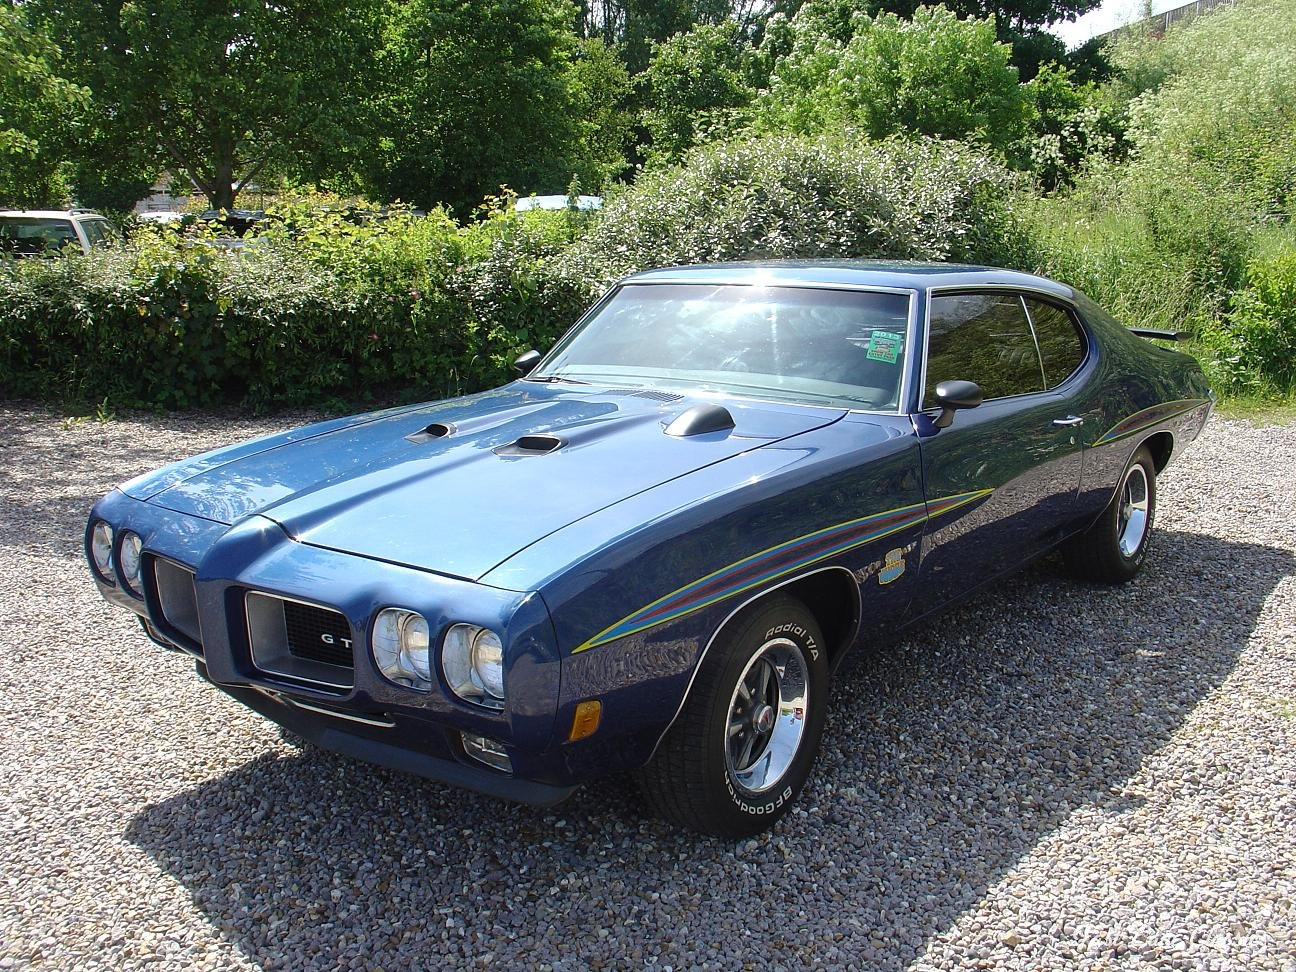 1970 gto judge for sale video search engine at. Black Bedroom Furniture Sets. Home Design Ideas